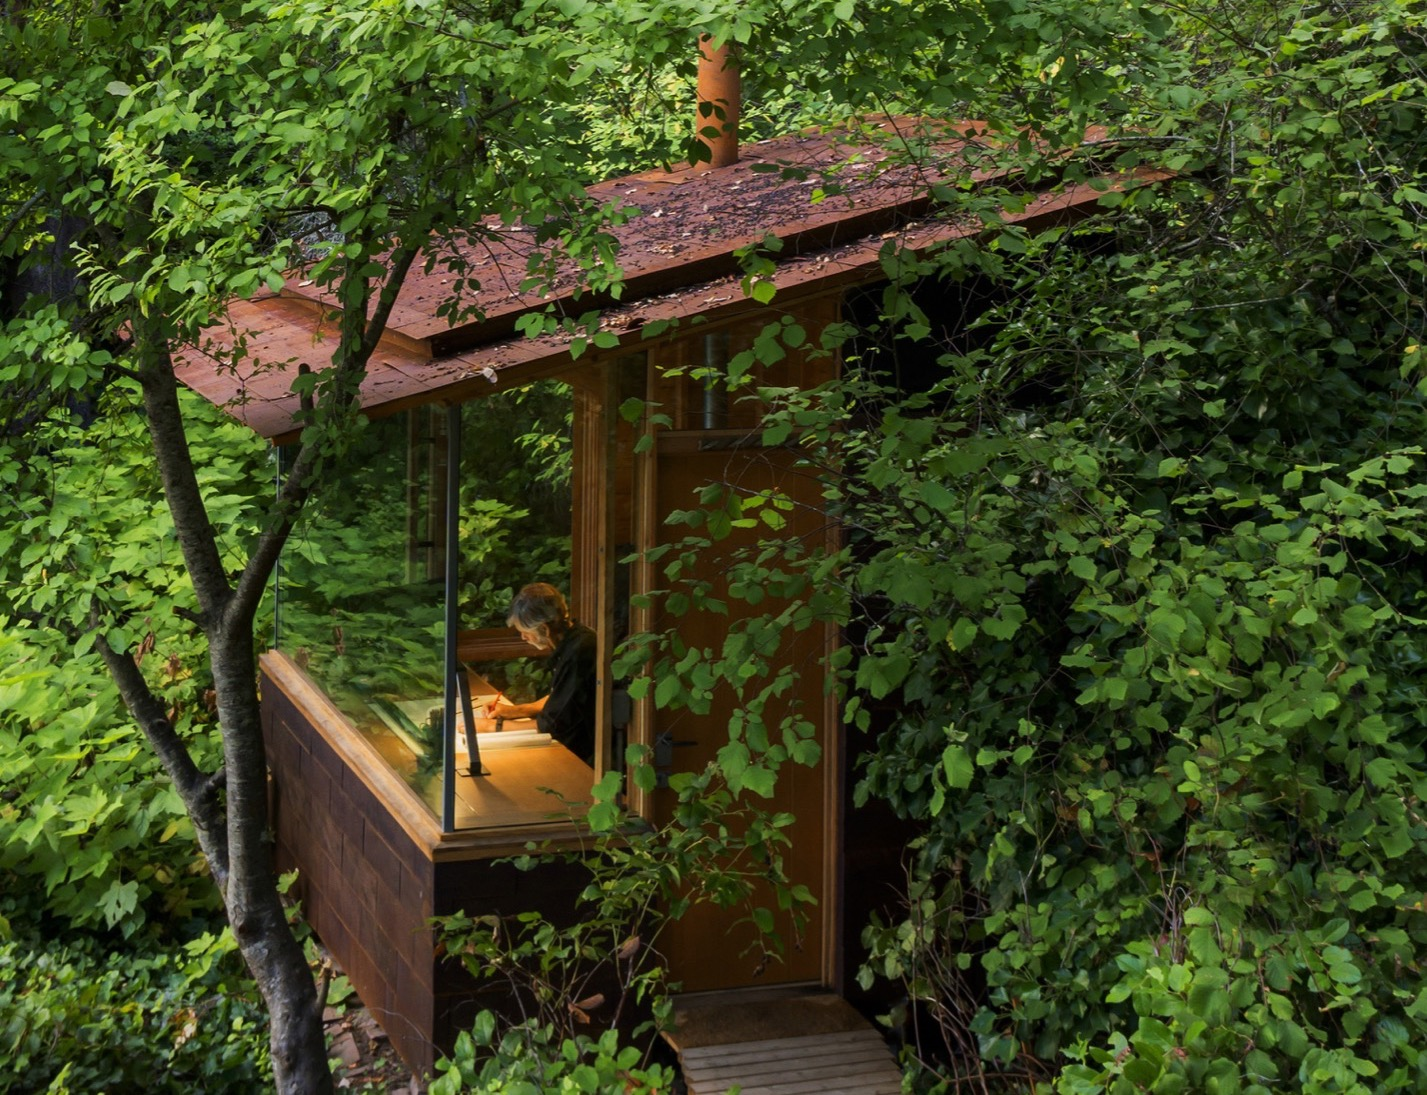 This cozy cabin in the woods was once just an old tool shed